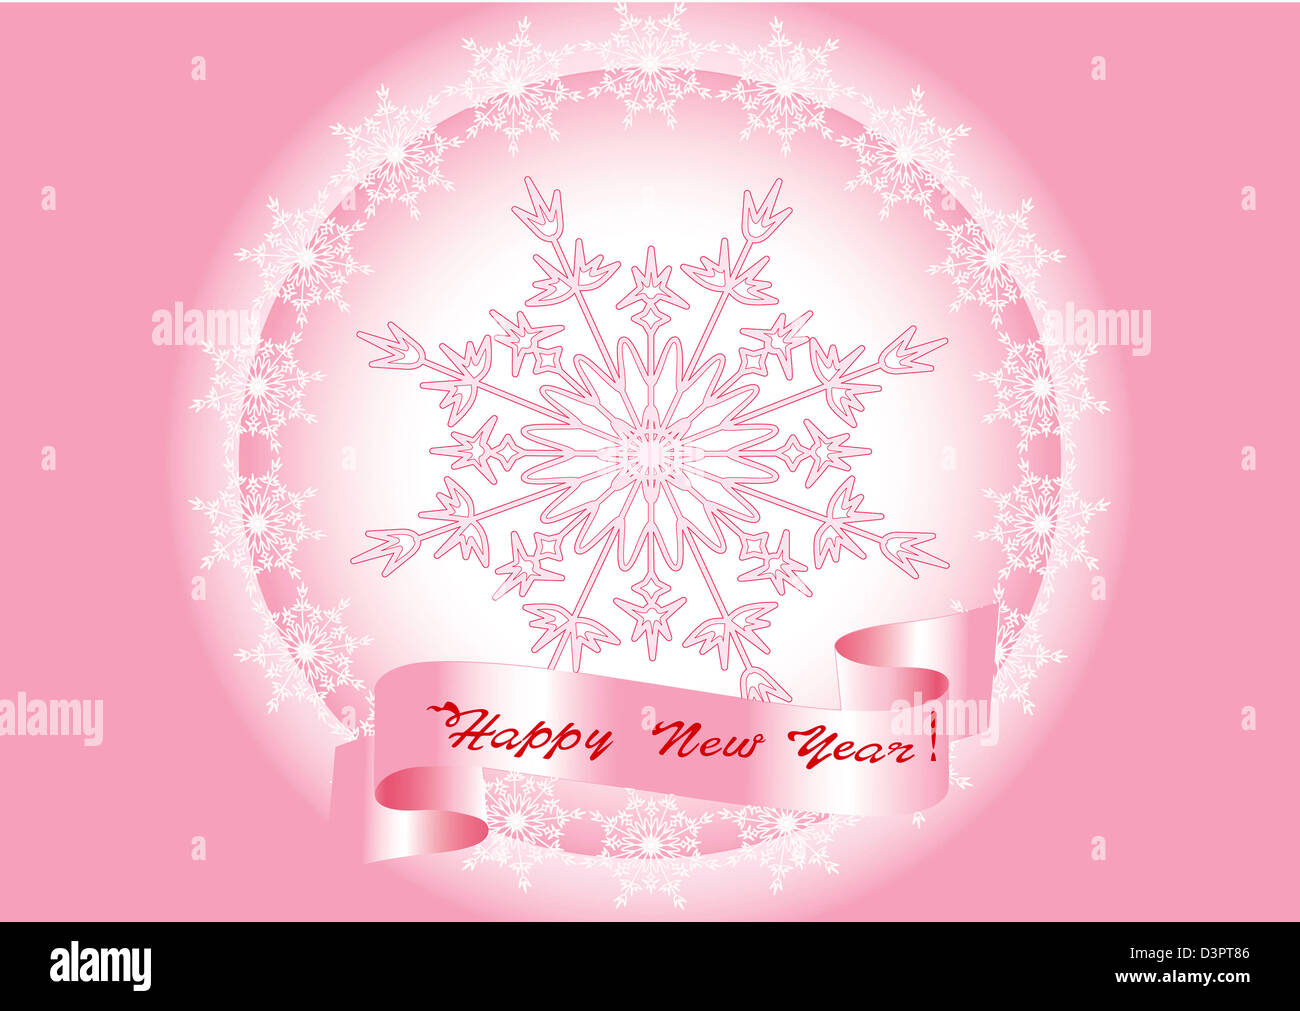 Card with the New Year and Merry Christmas. - Stock Image